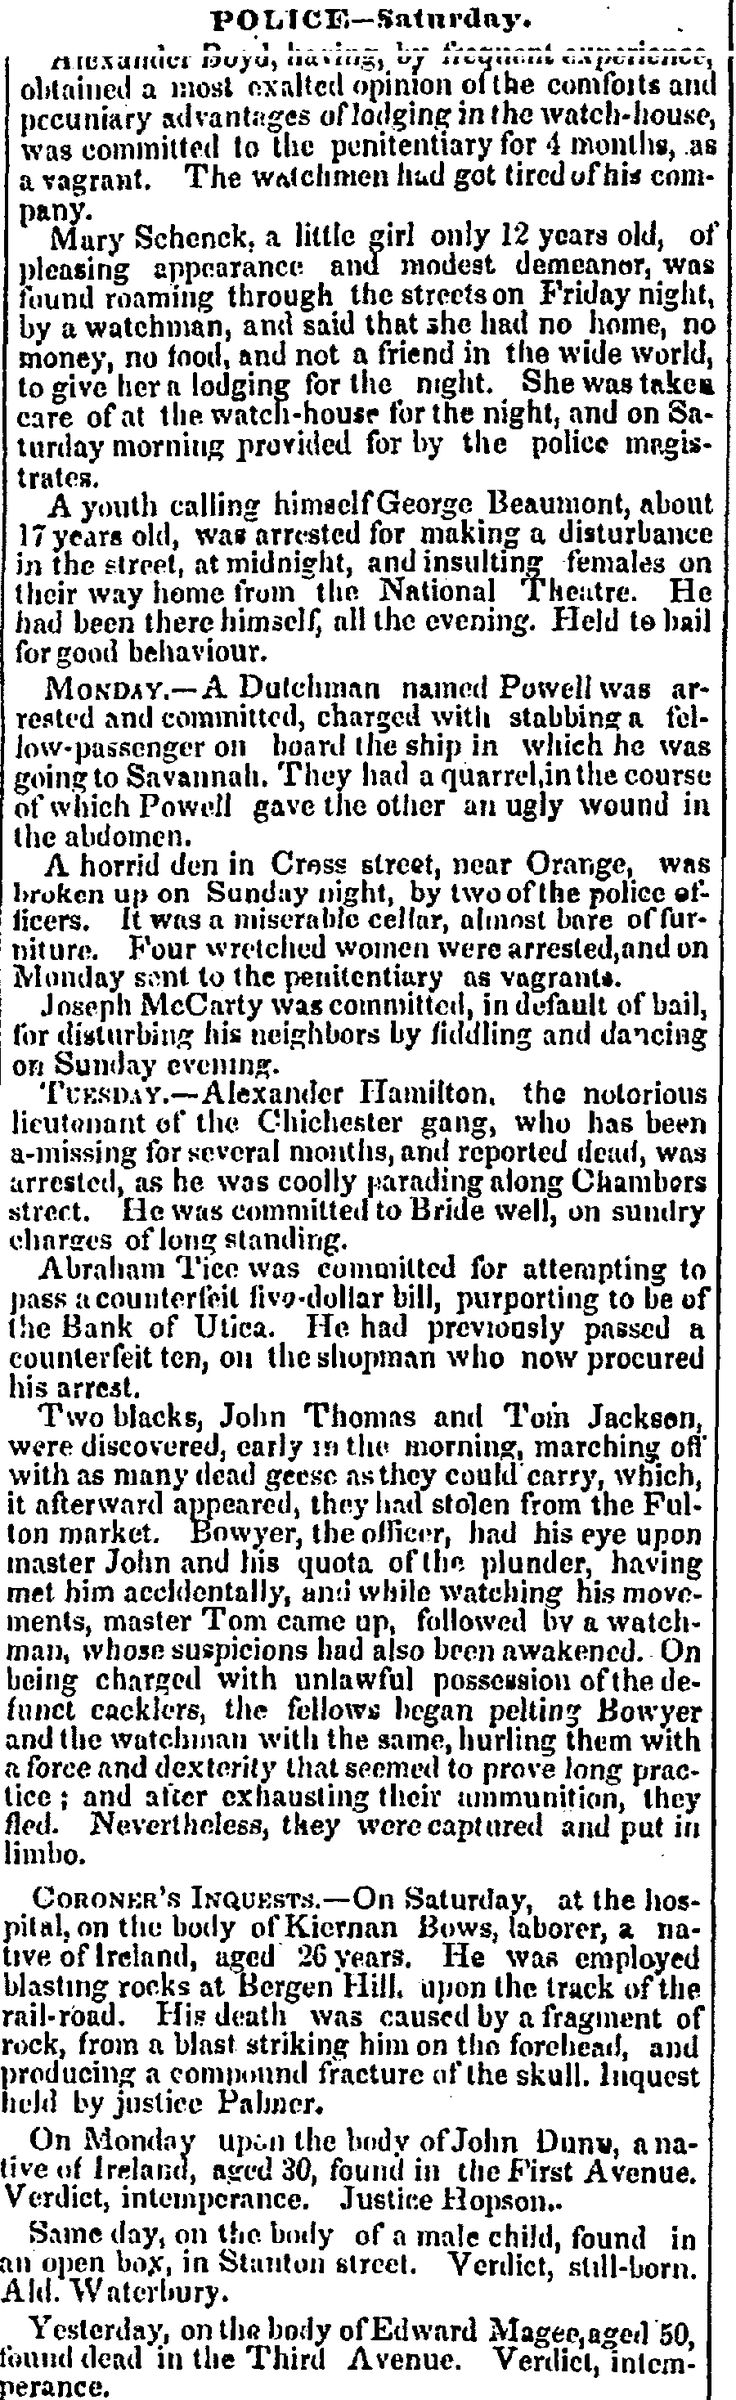 "1836.12.14. ""A horrid den in Cross Street near Orange was broken up on Sunday night. It was a miserable cellar almost bare of furniture. Four woman were arrested and on Monday sent to the pen. as vagrants."""